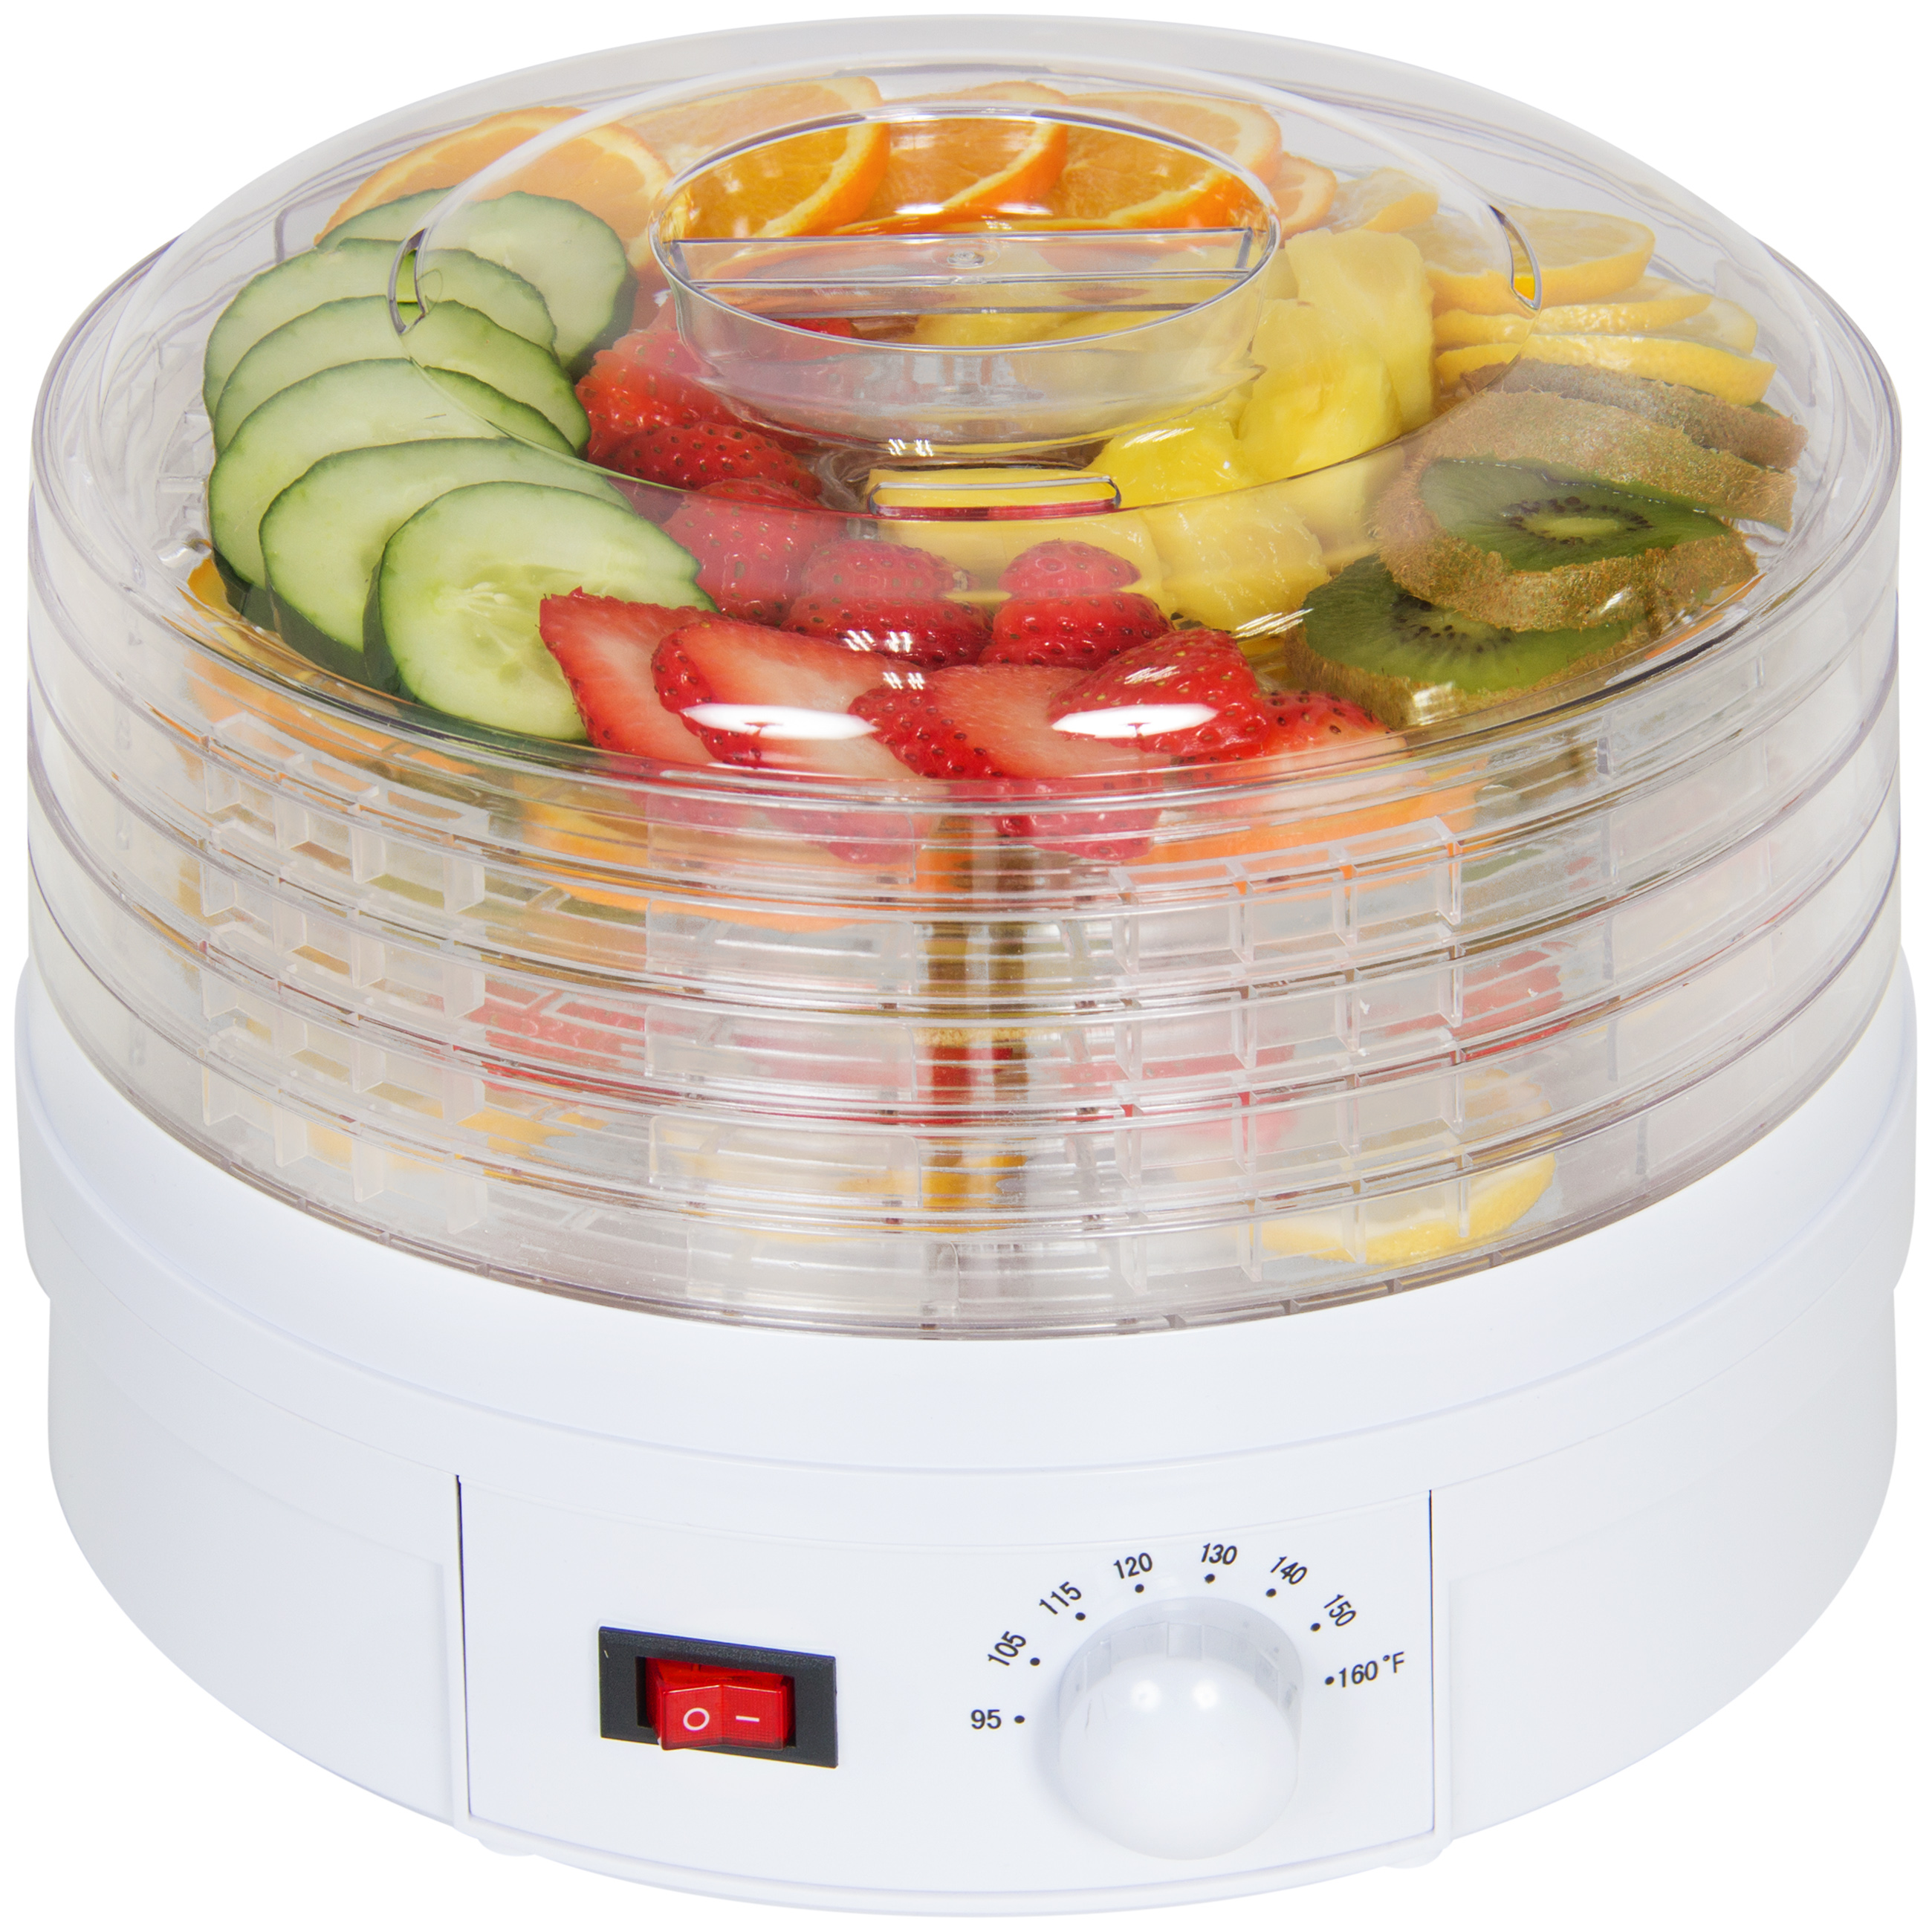 Best Choice Products 5-Tray Portable Electric Food Dehydrator for Fruit, Meats, Herbs w  Adjustable Thermostat White by Best Choice Products